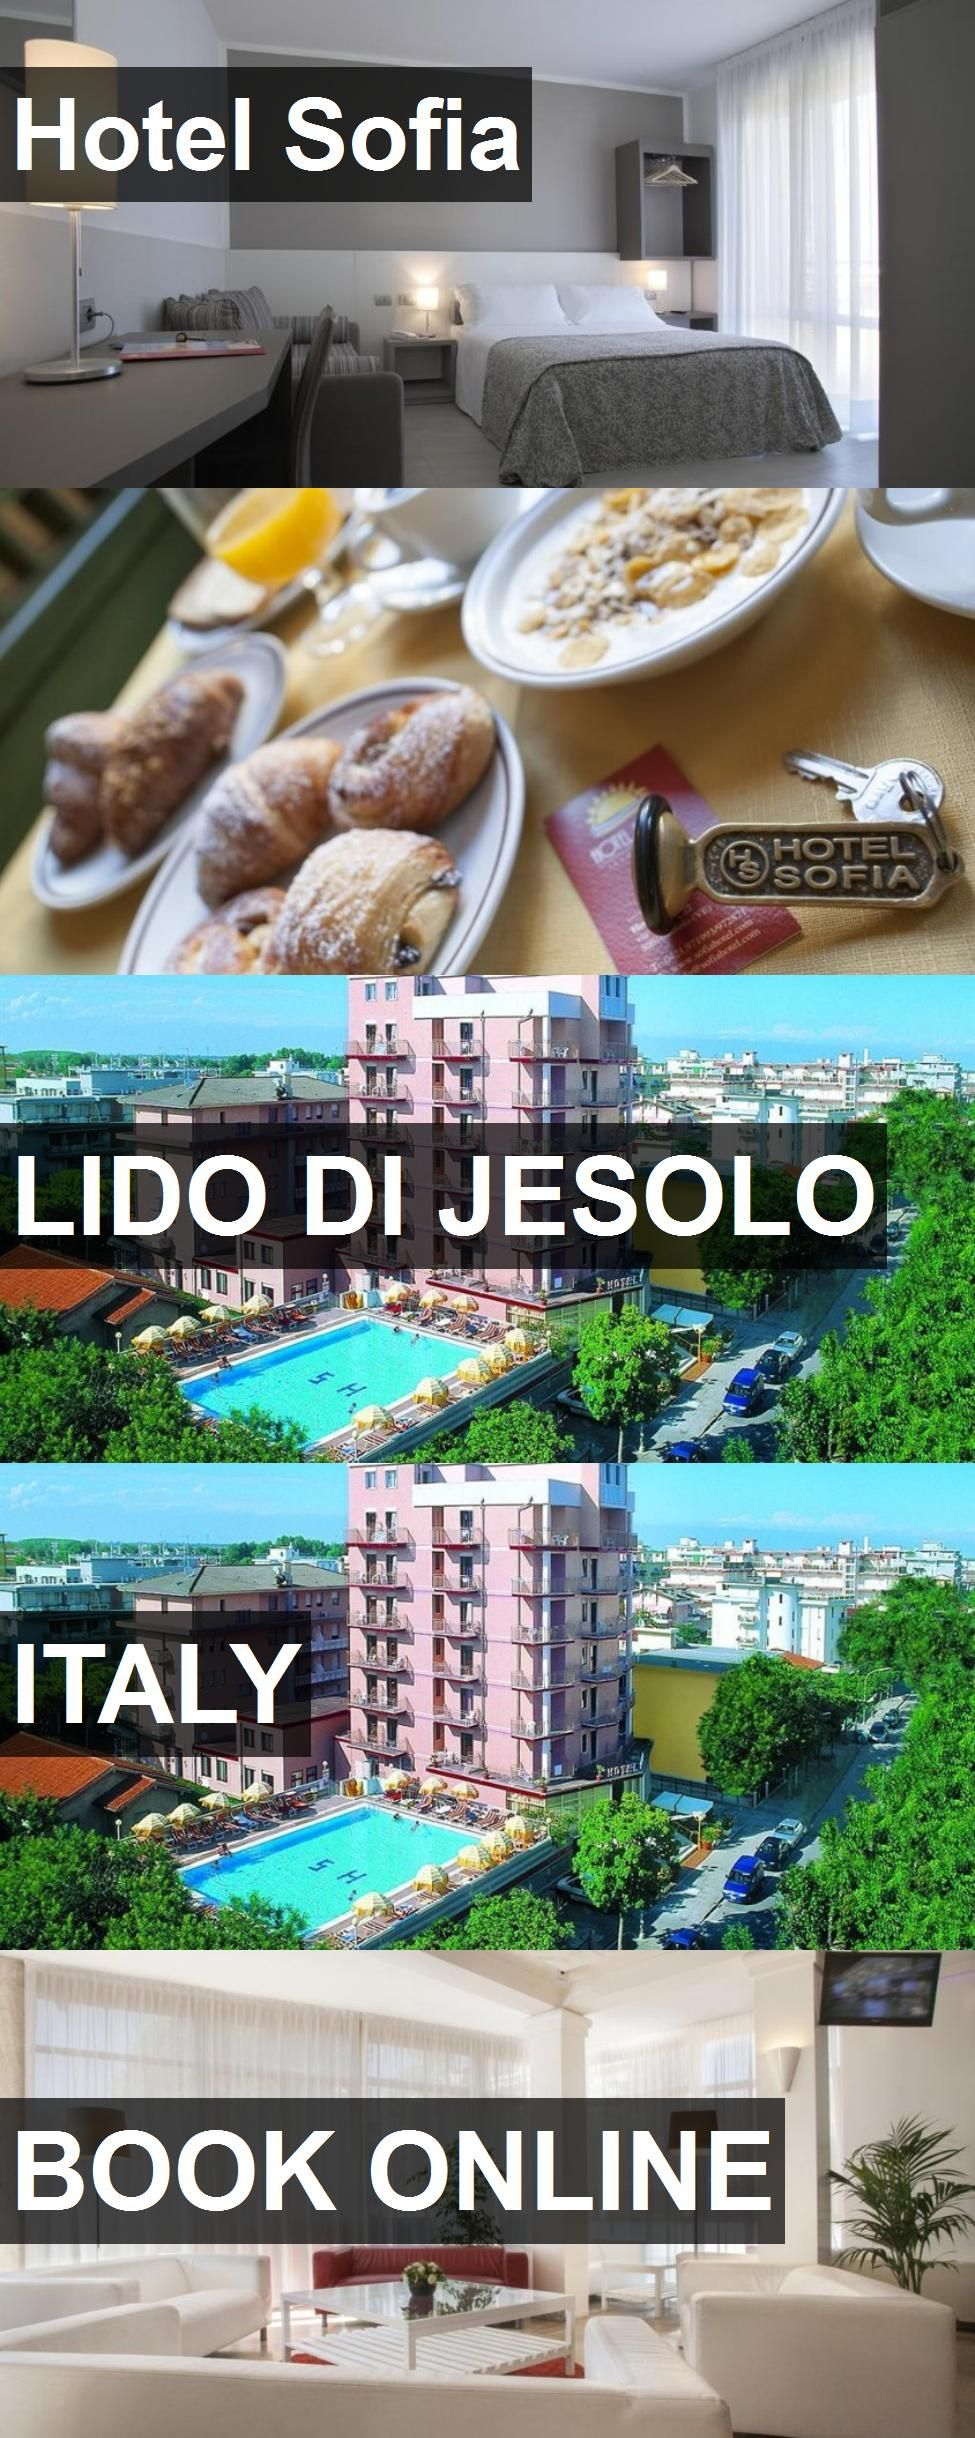 Hotel Sofia in Lido di Jesolo, Italy. For more information, photos, reviews and best prices please follow the link. #Italy #LidodiJesolo #travel #vacation #hotel